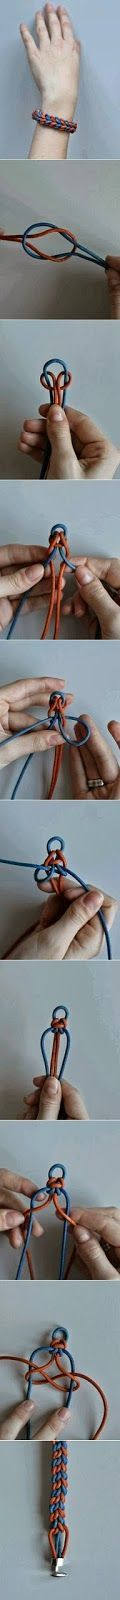 My DIY Projects: Diy Handmade Bracelet